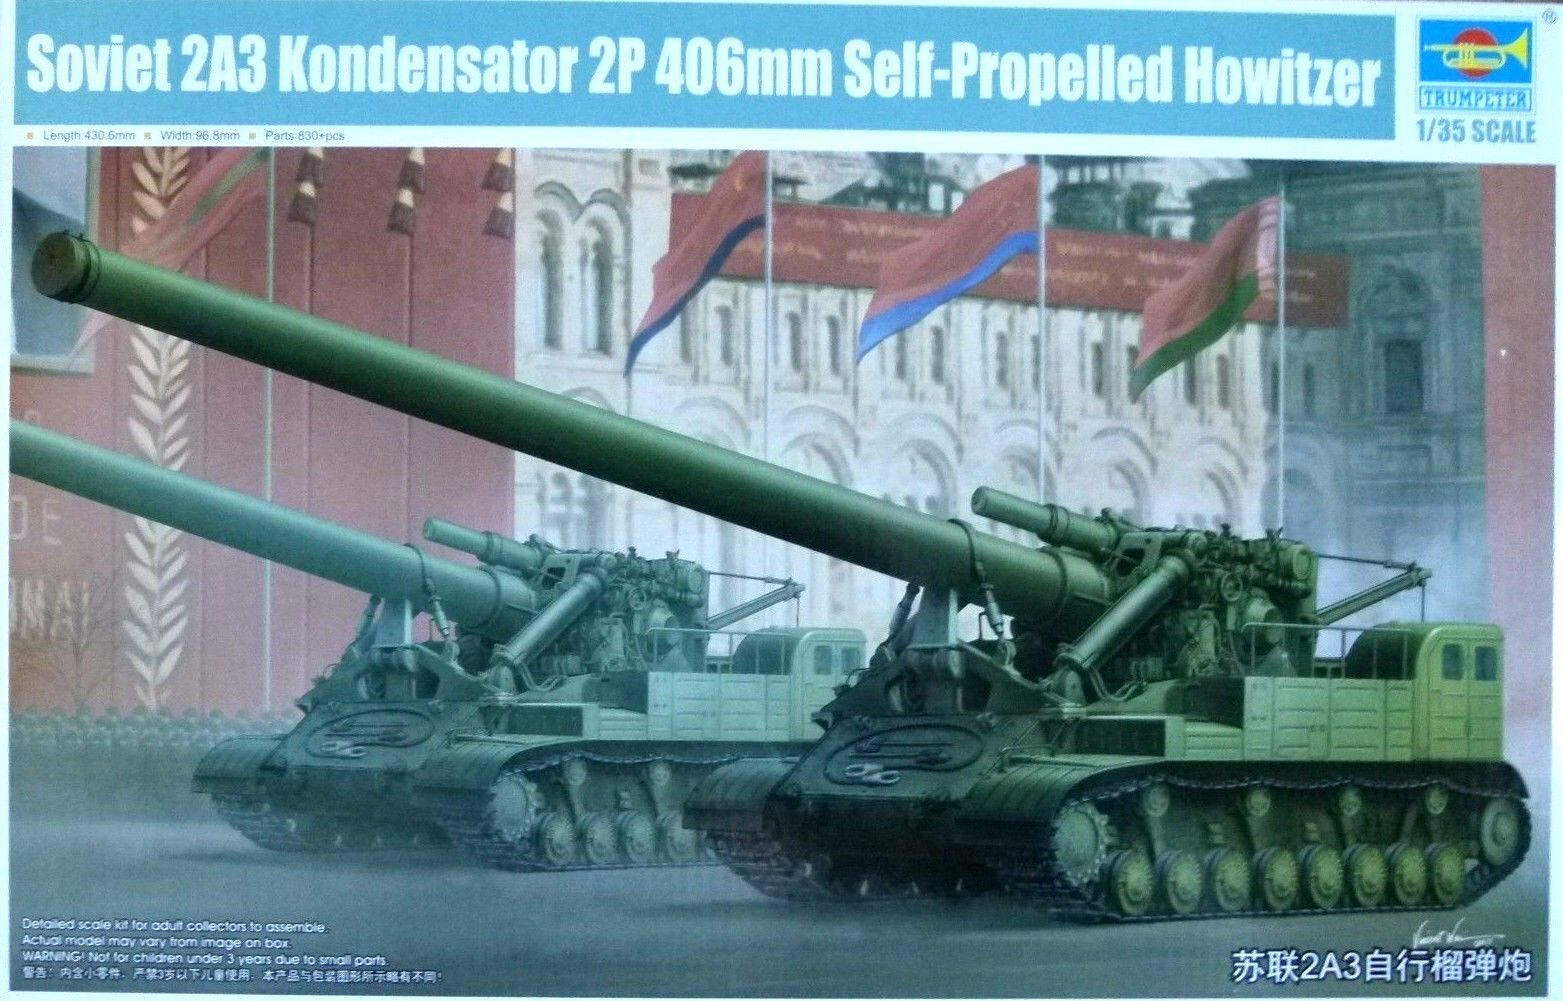 Trumpeter 1 35 Soviet 2A3 Kondensator 2P 406mm Self-Propelled Howitzer Model Kit